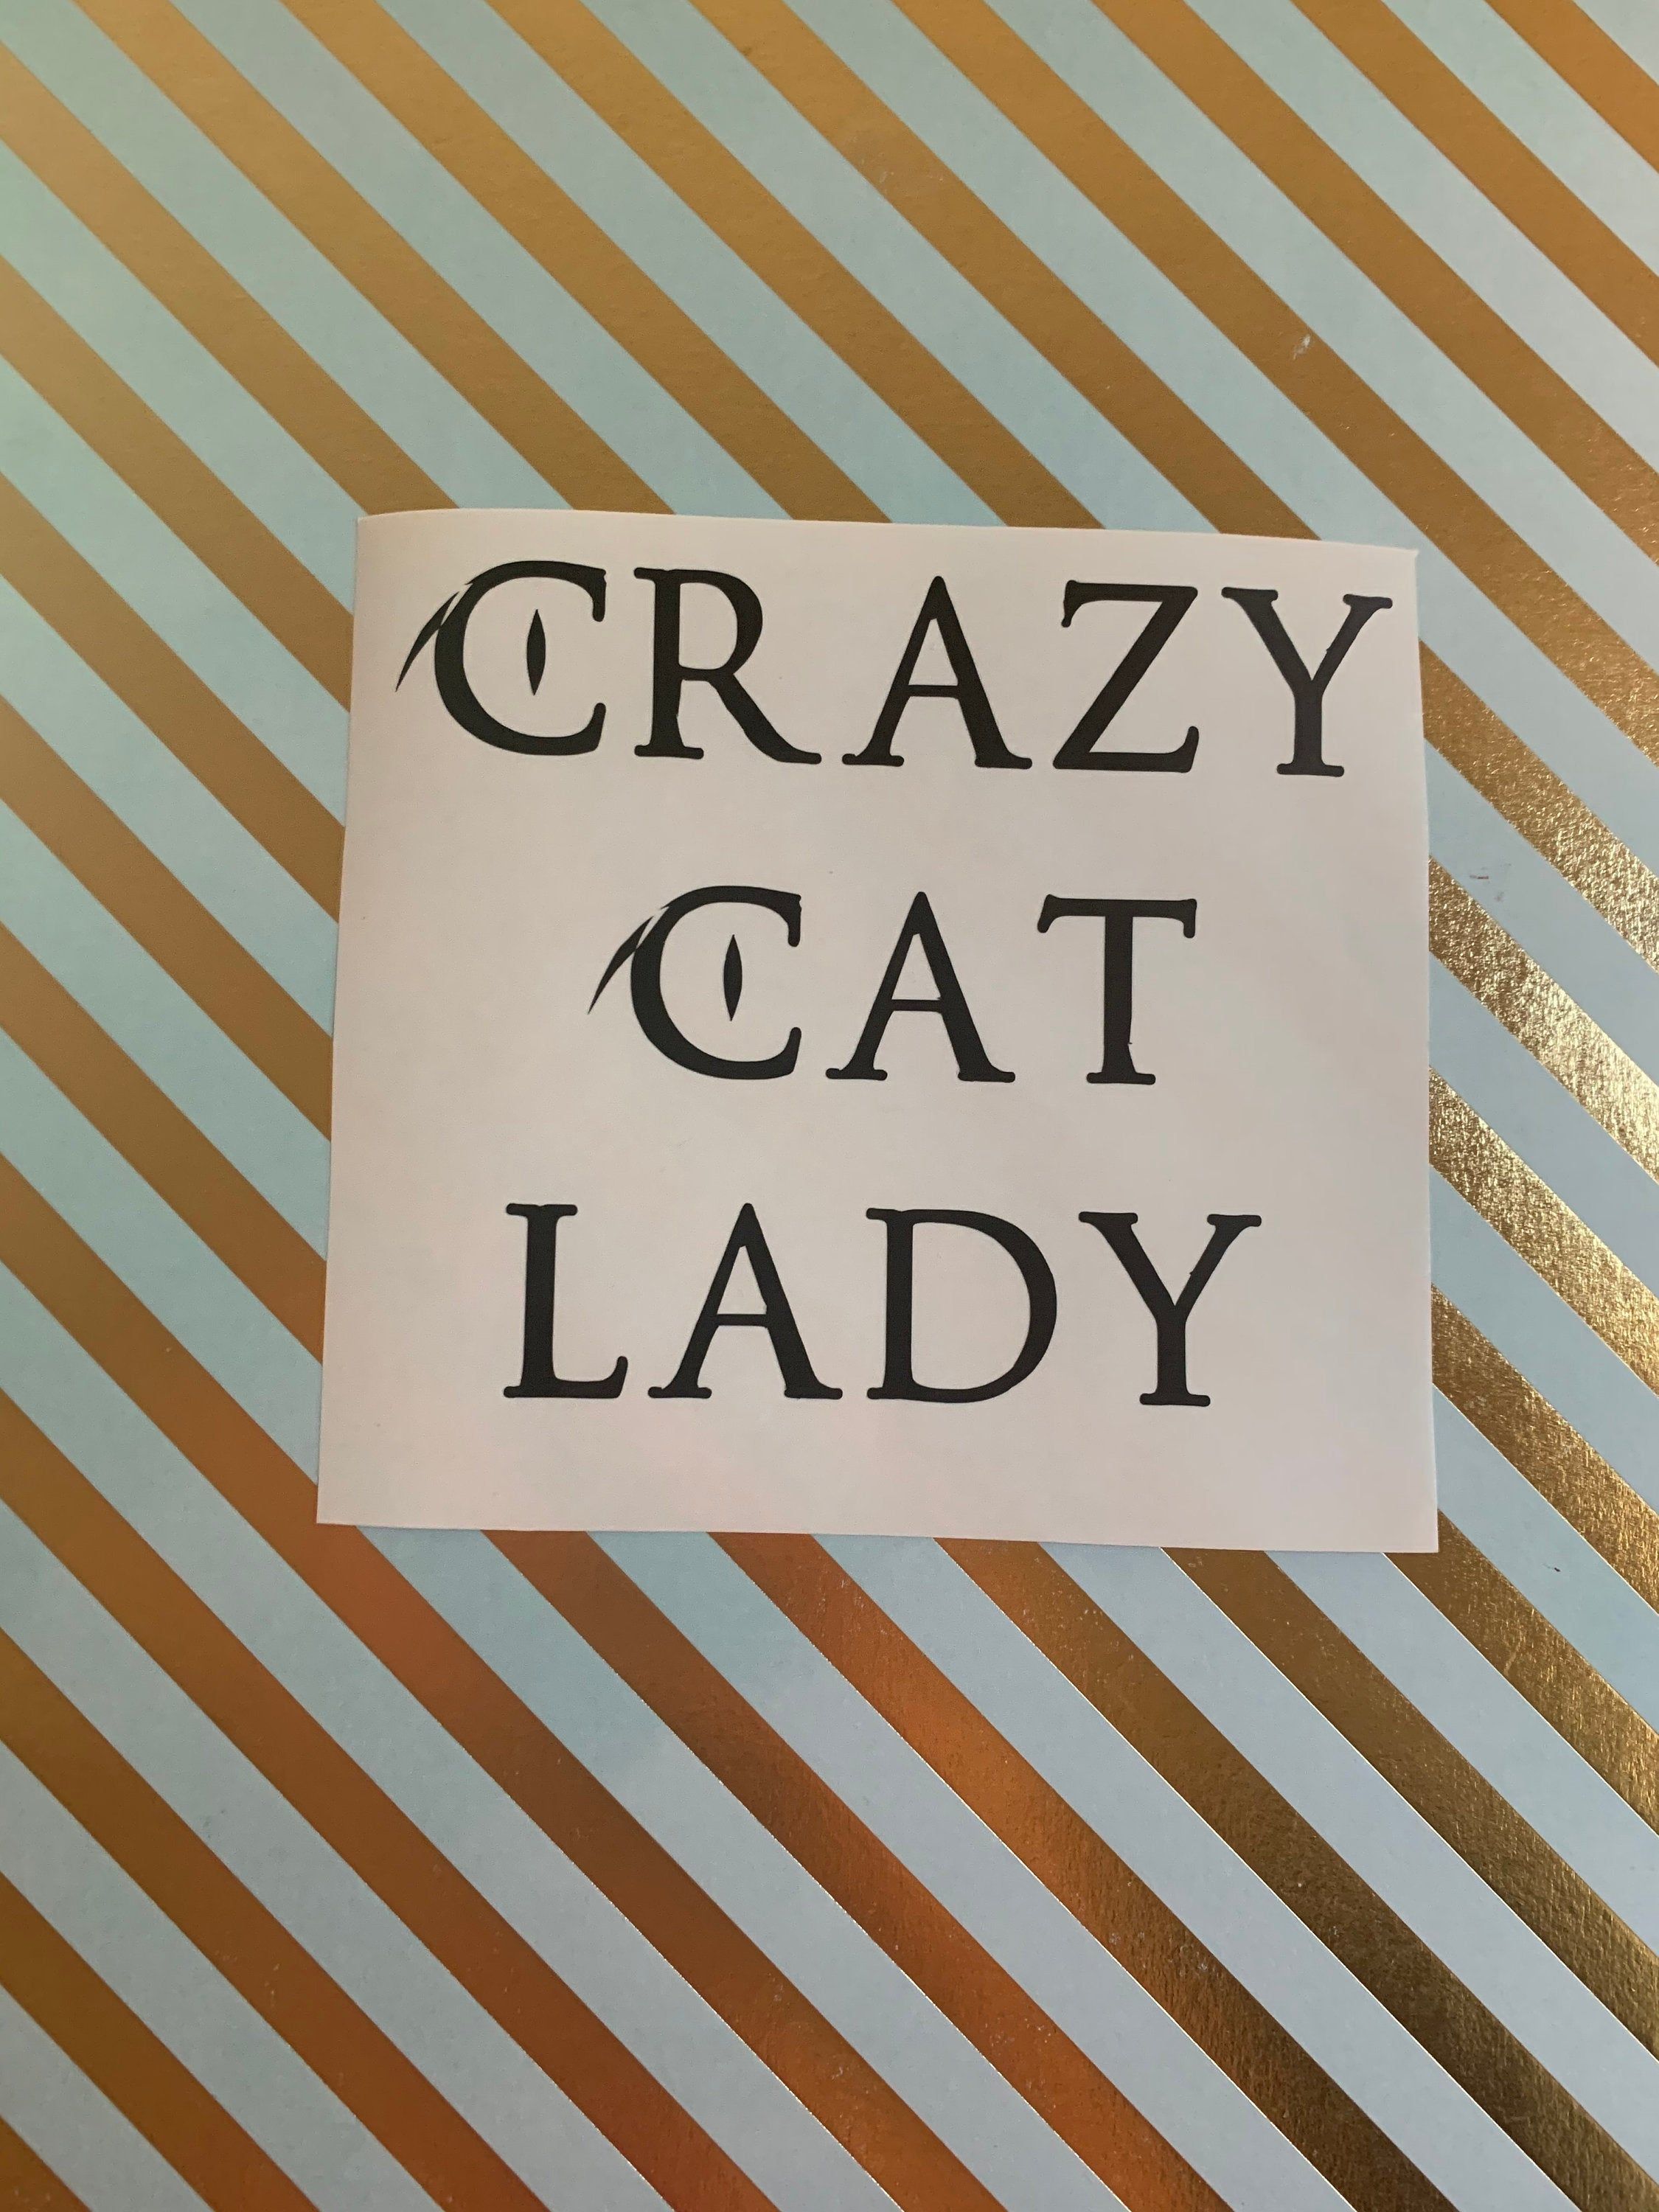 Cat Eye Crazy Cat Lady Message For Any Custom Decals You Like To Have Made Customdecals Crazycatlady Www Custom Vinyl Stickers Crazy Cats Custom Vinyl [ 3000 x 2250 Pixel ]